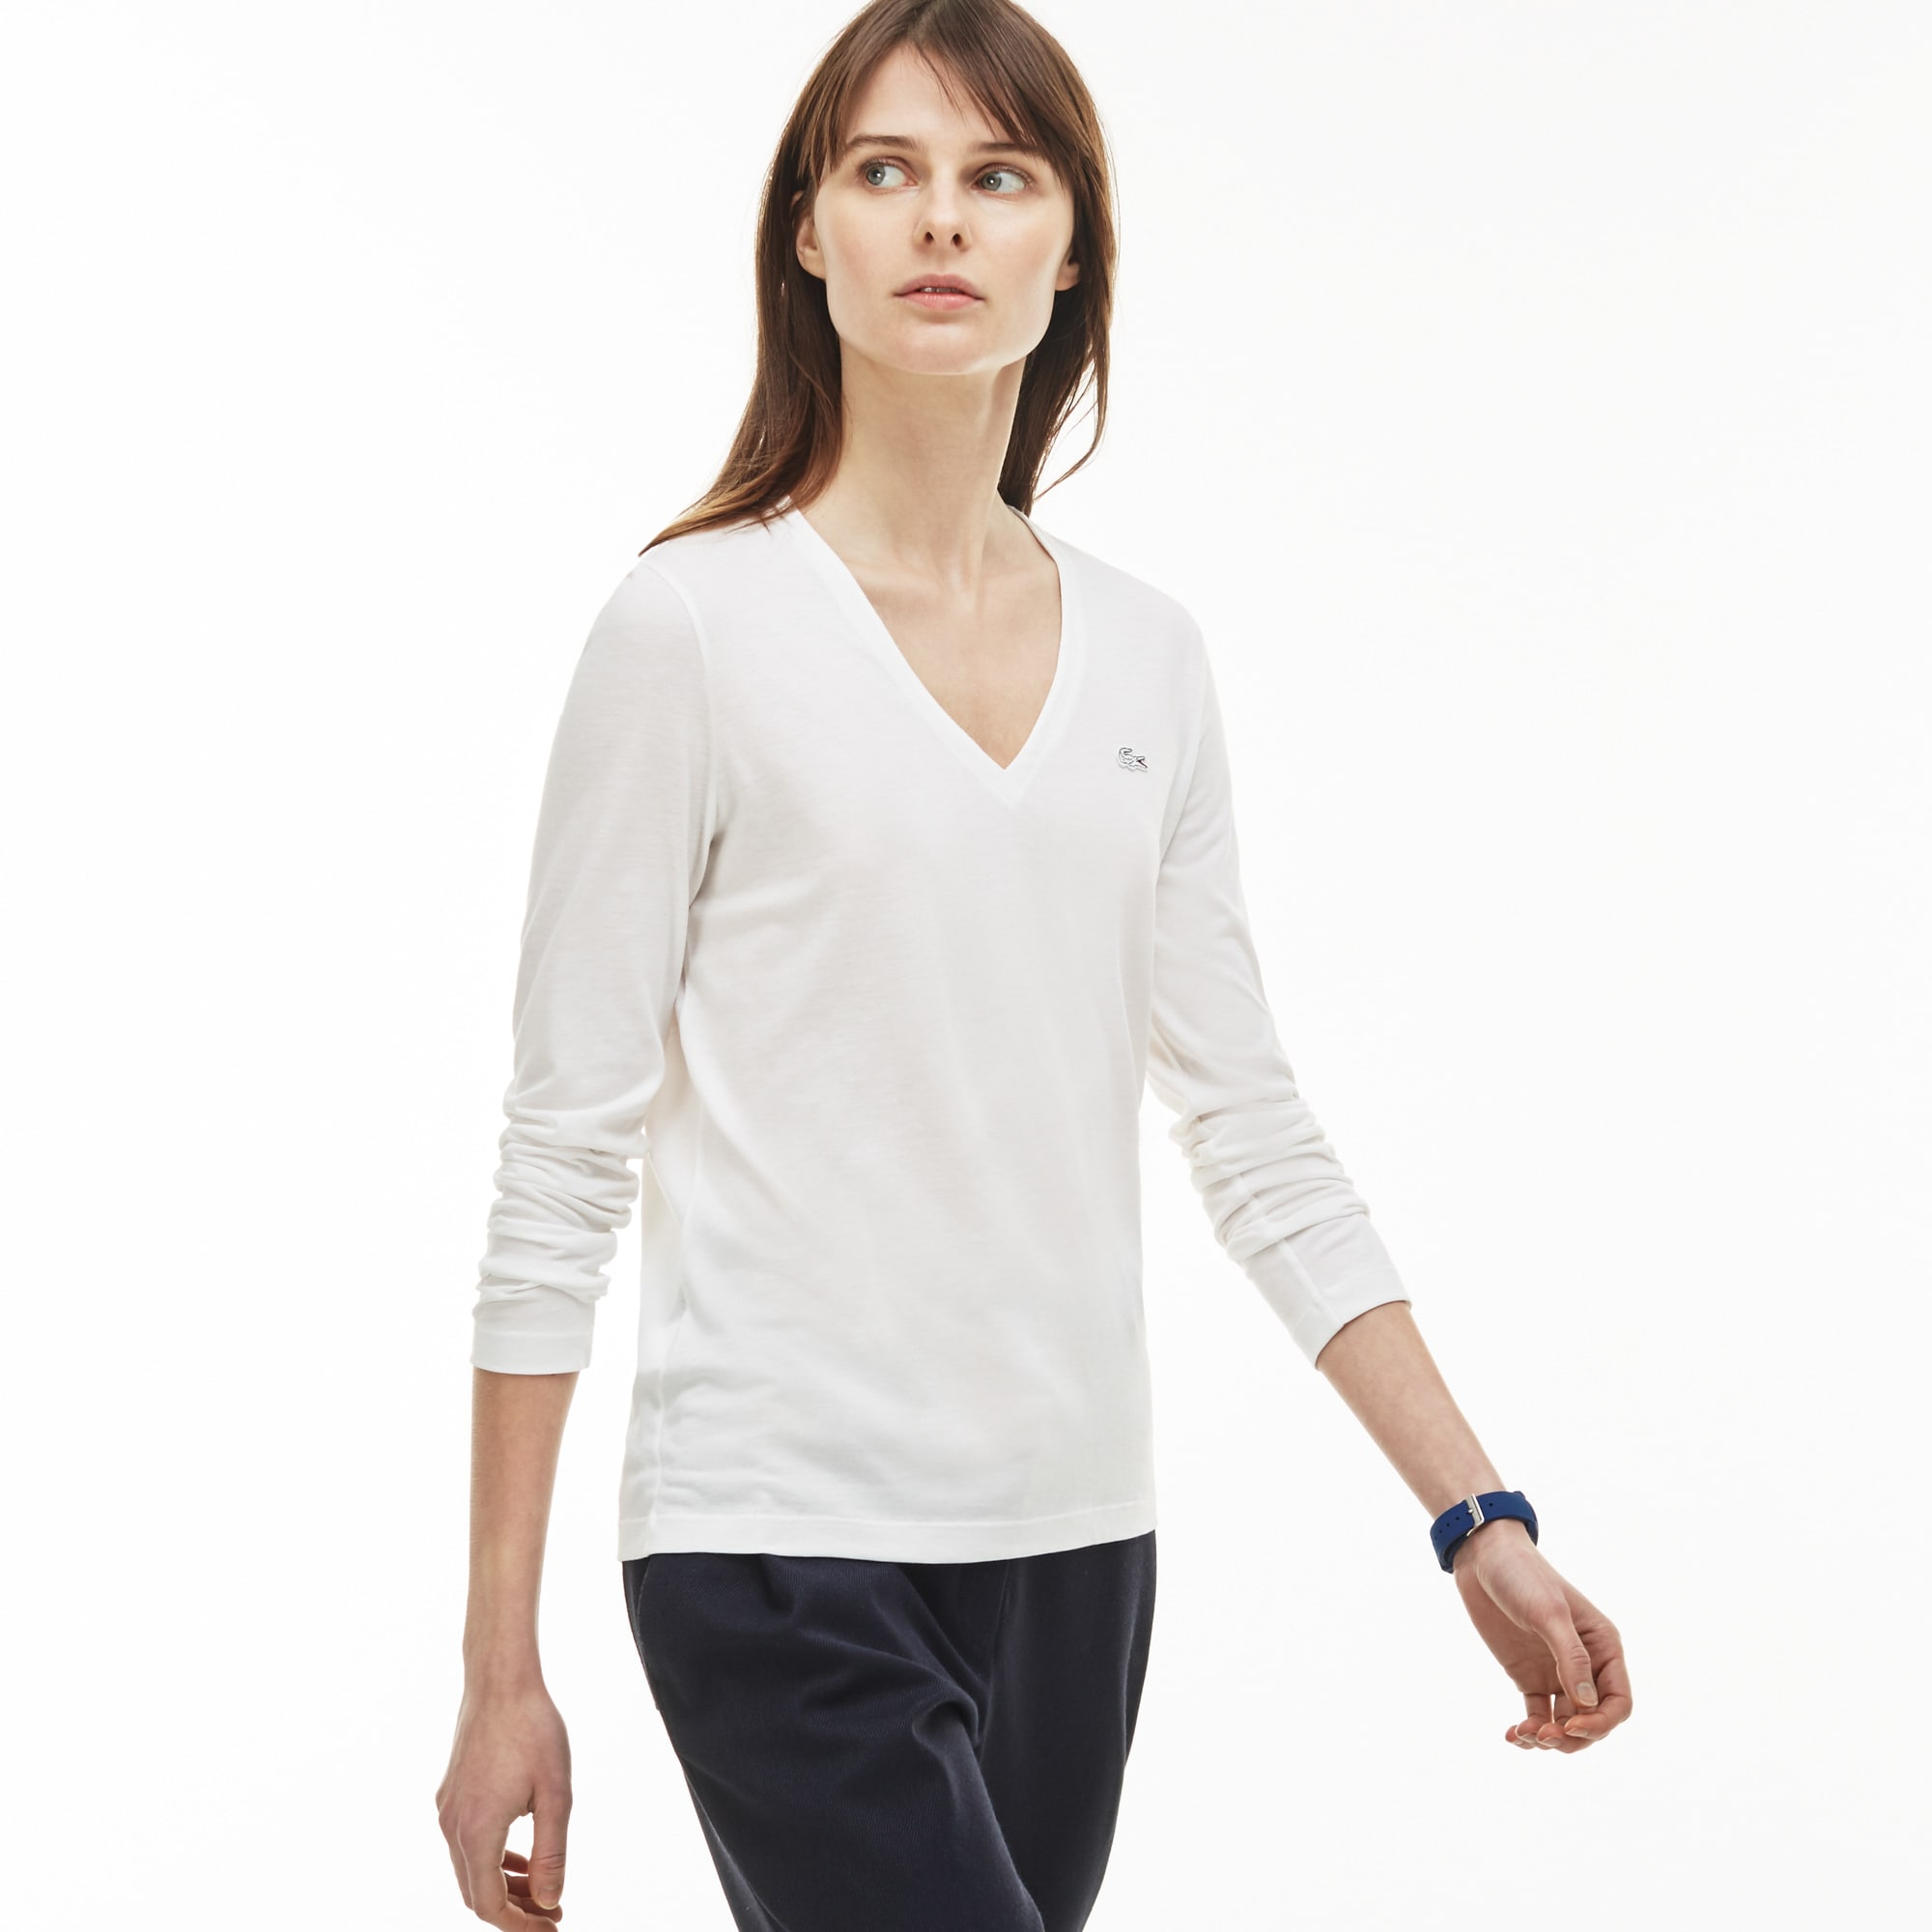 Women's V-neck Flowing Cotton Jersey T-shirt